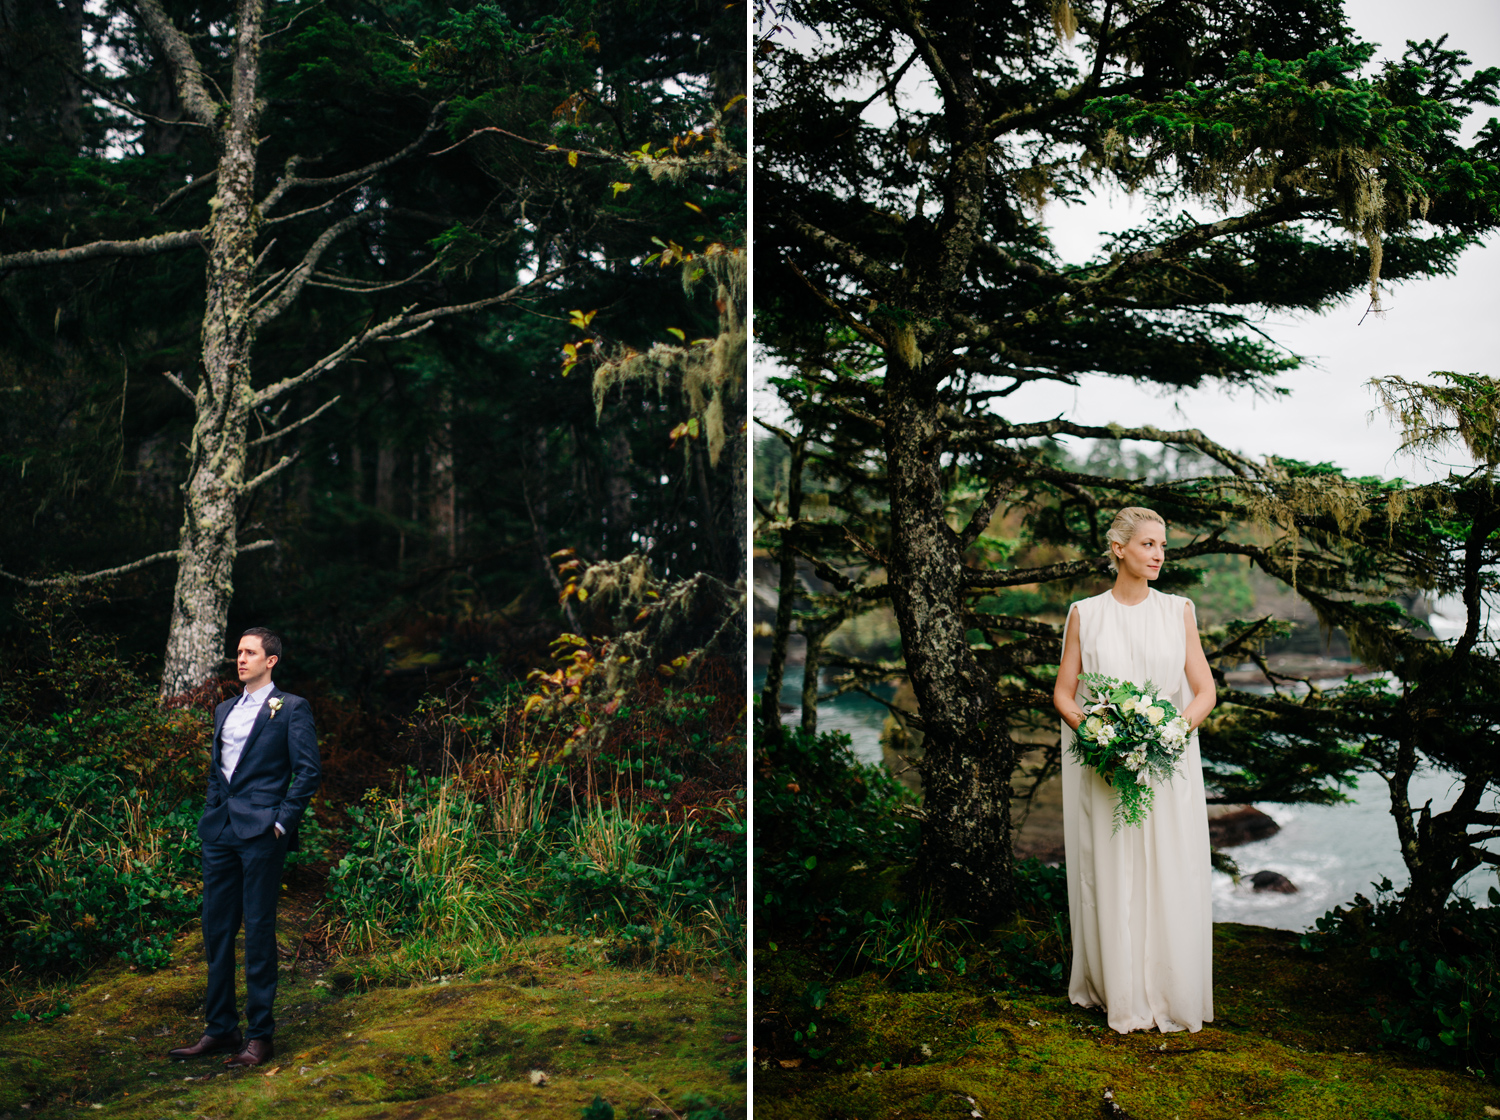 022-pnw-coastal-elopement-at-cape-flattery-by-seattle-wedding-photographer-ryan-flynn.jpg